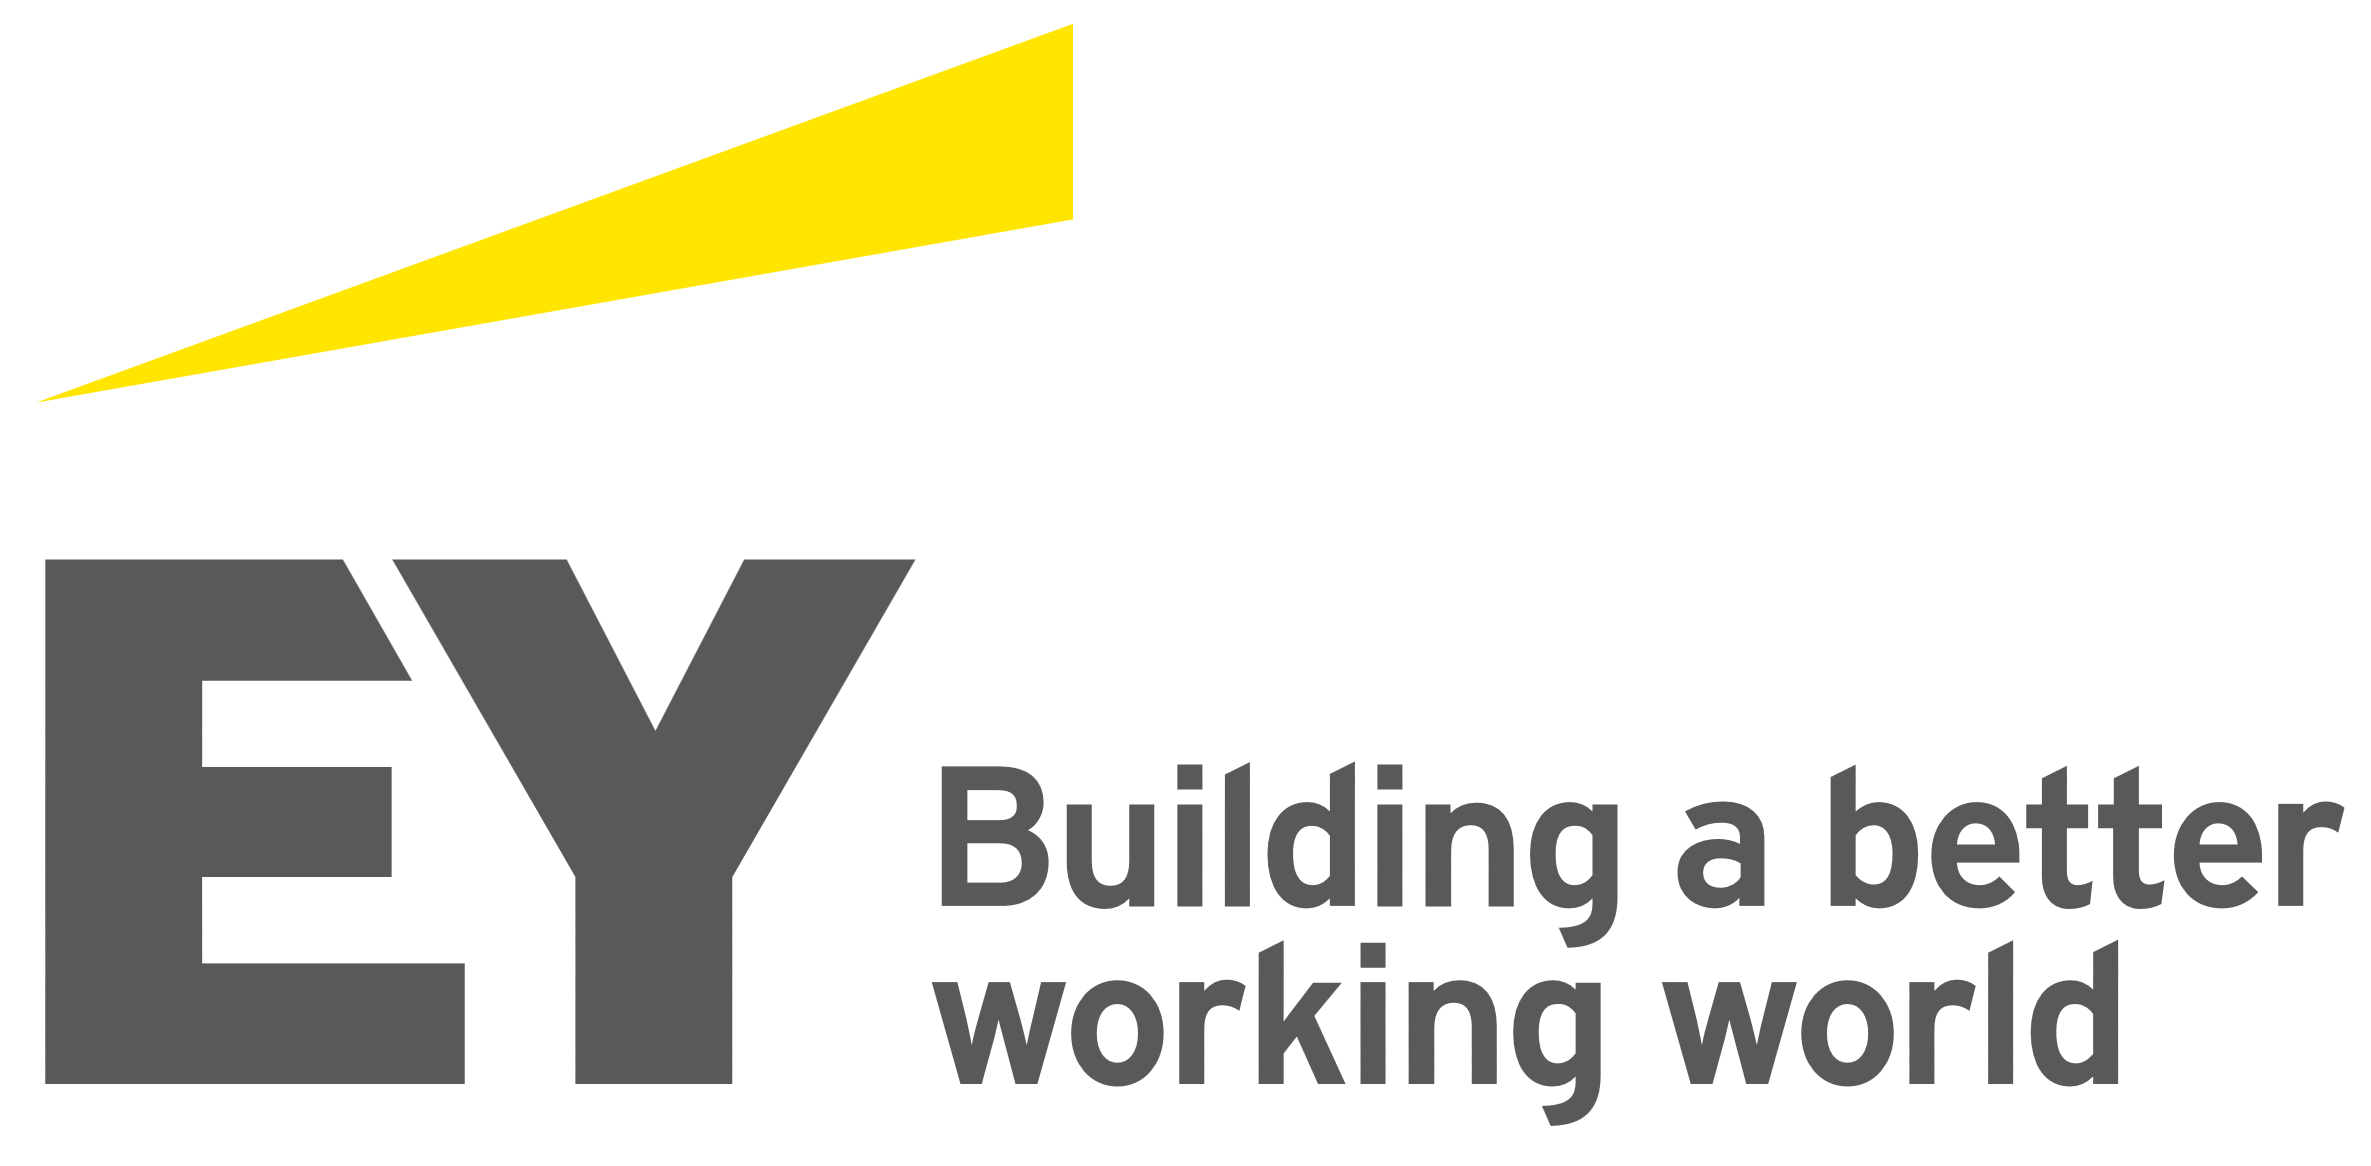 EY_logo_slogan_Ernst_and_Young